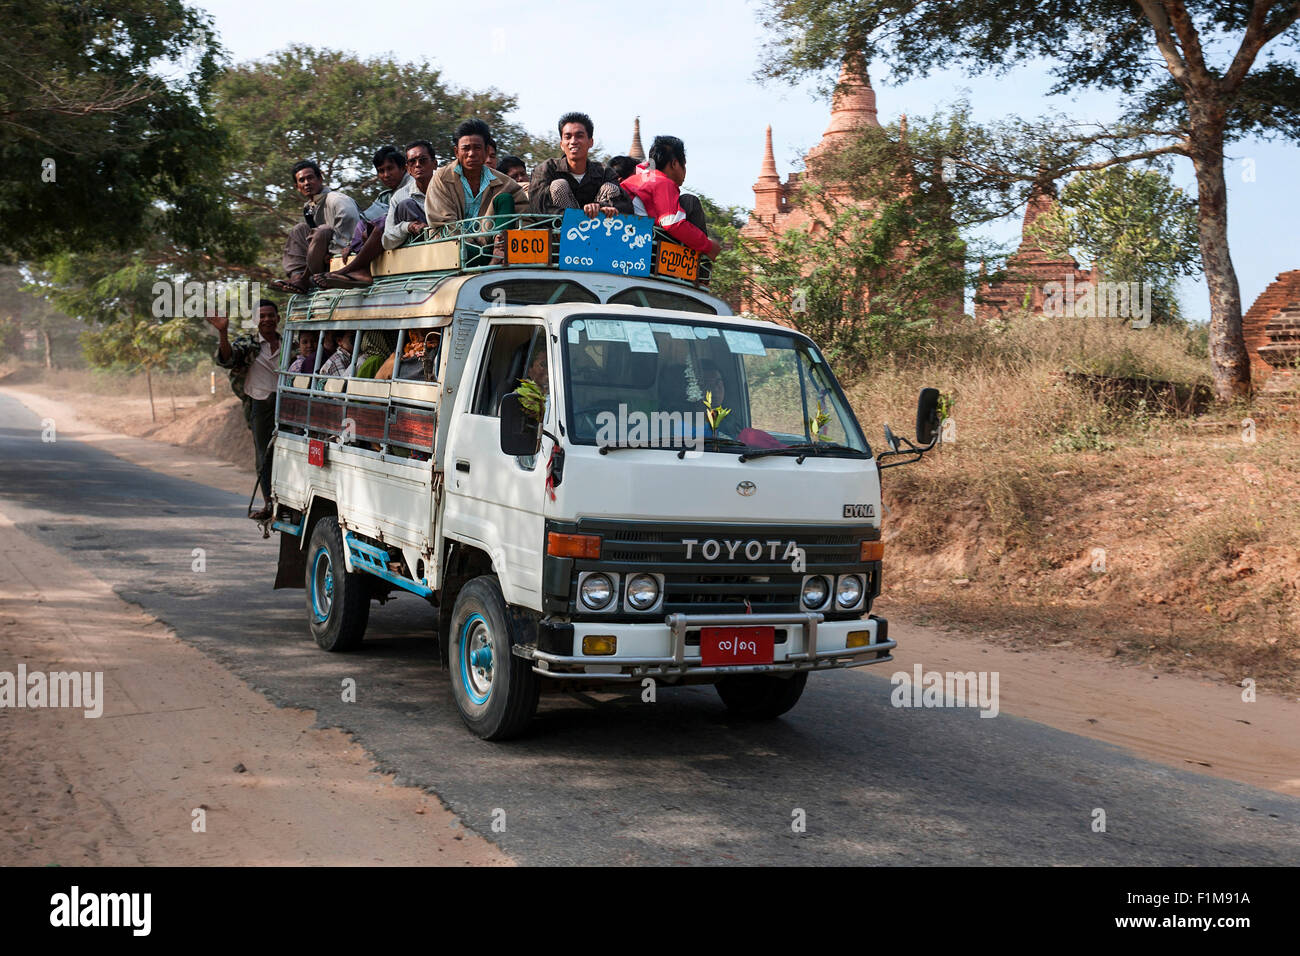 Public transportation, minibus with people in it and on the roof, driving on the road, in Bagan, Mandalay region, - Stock Image